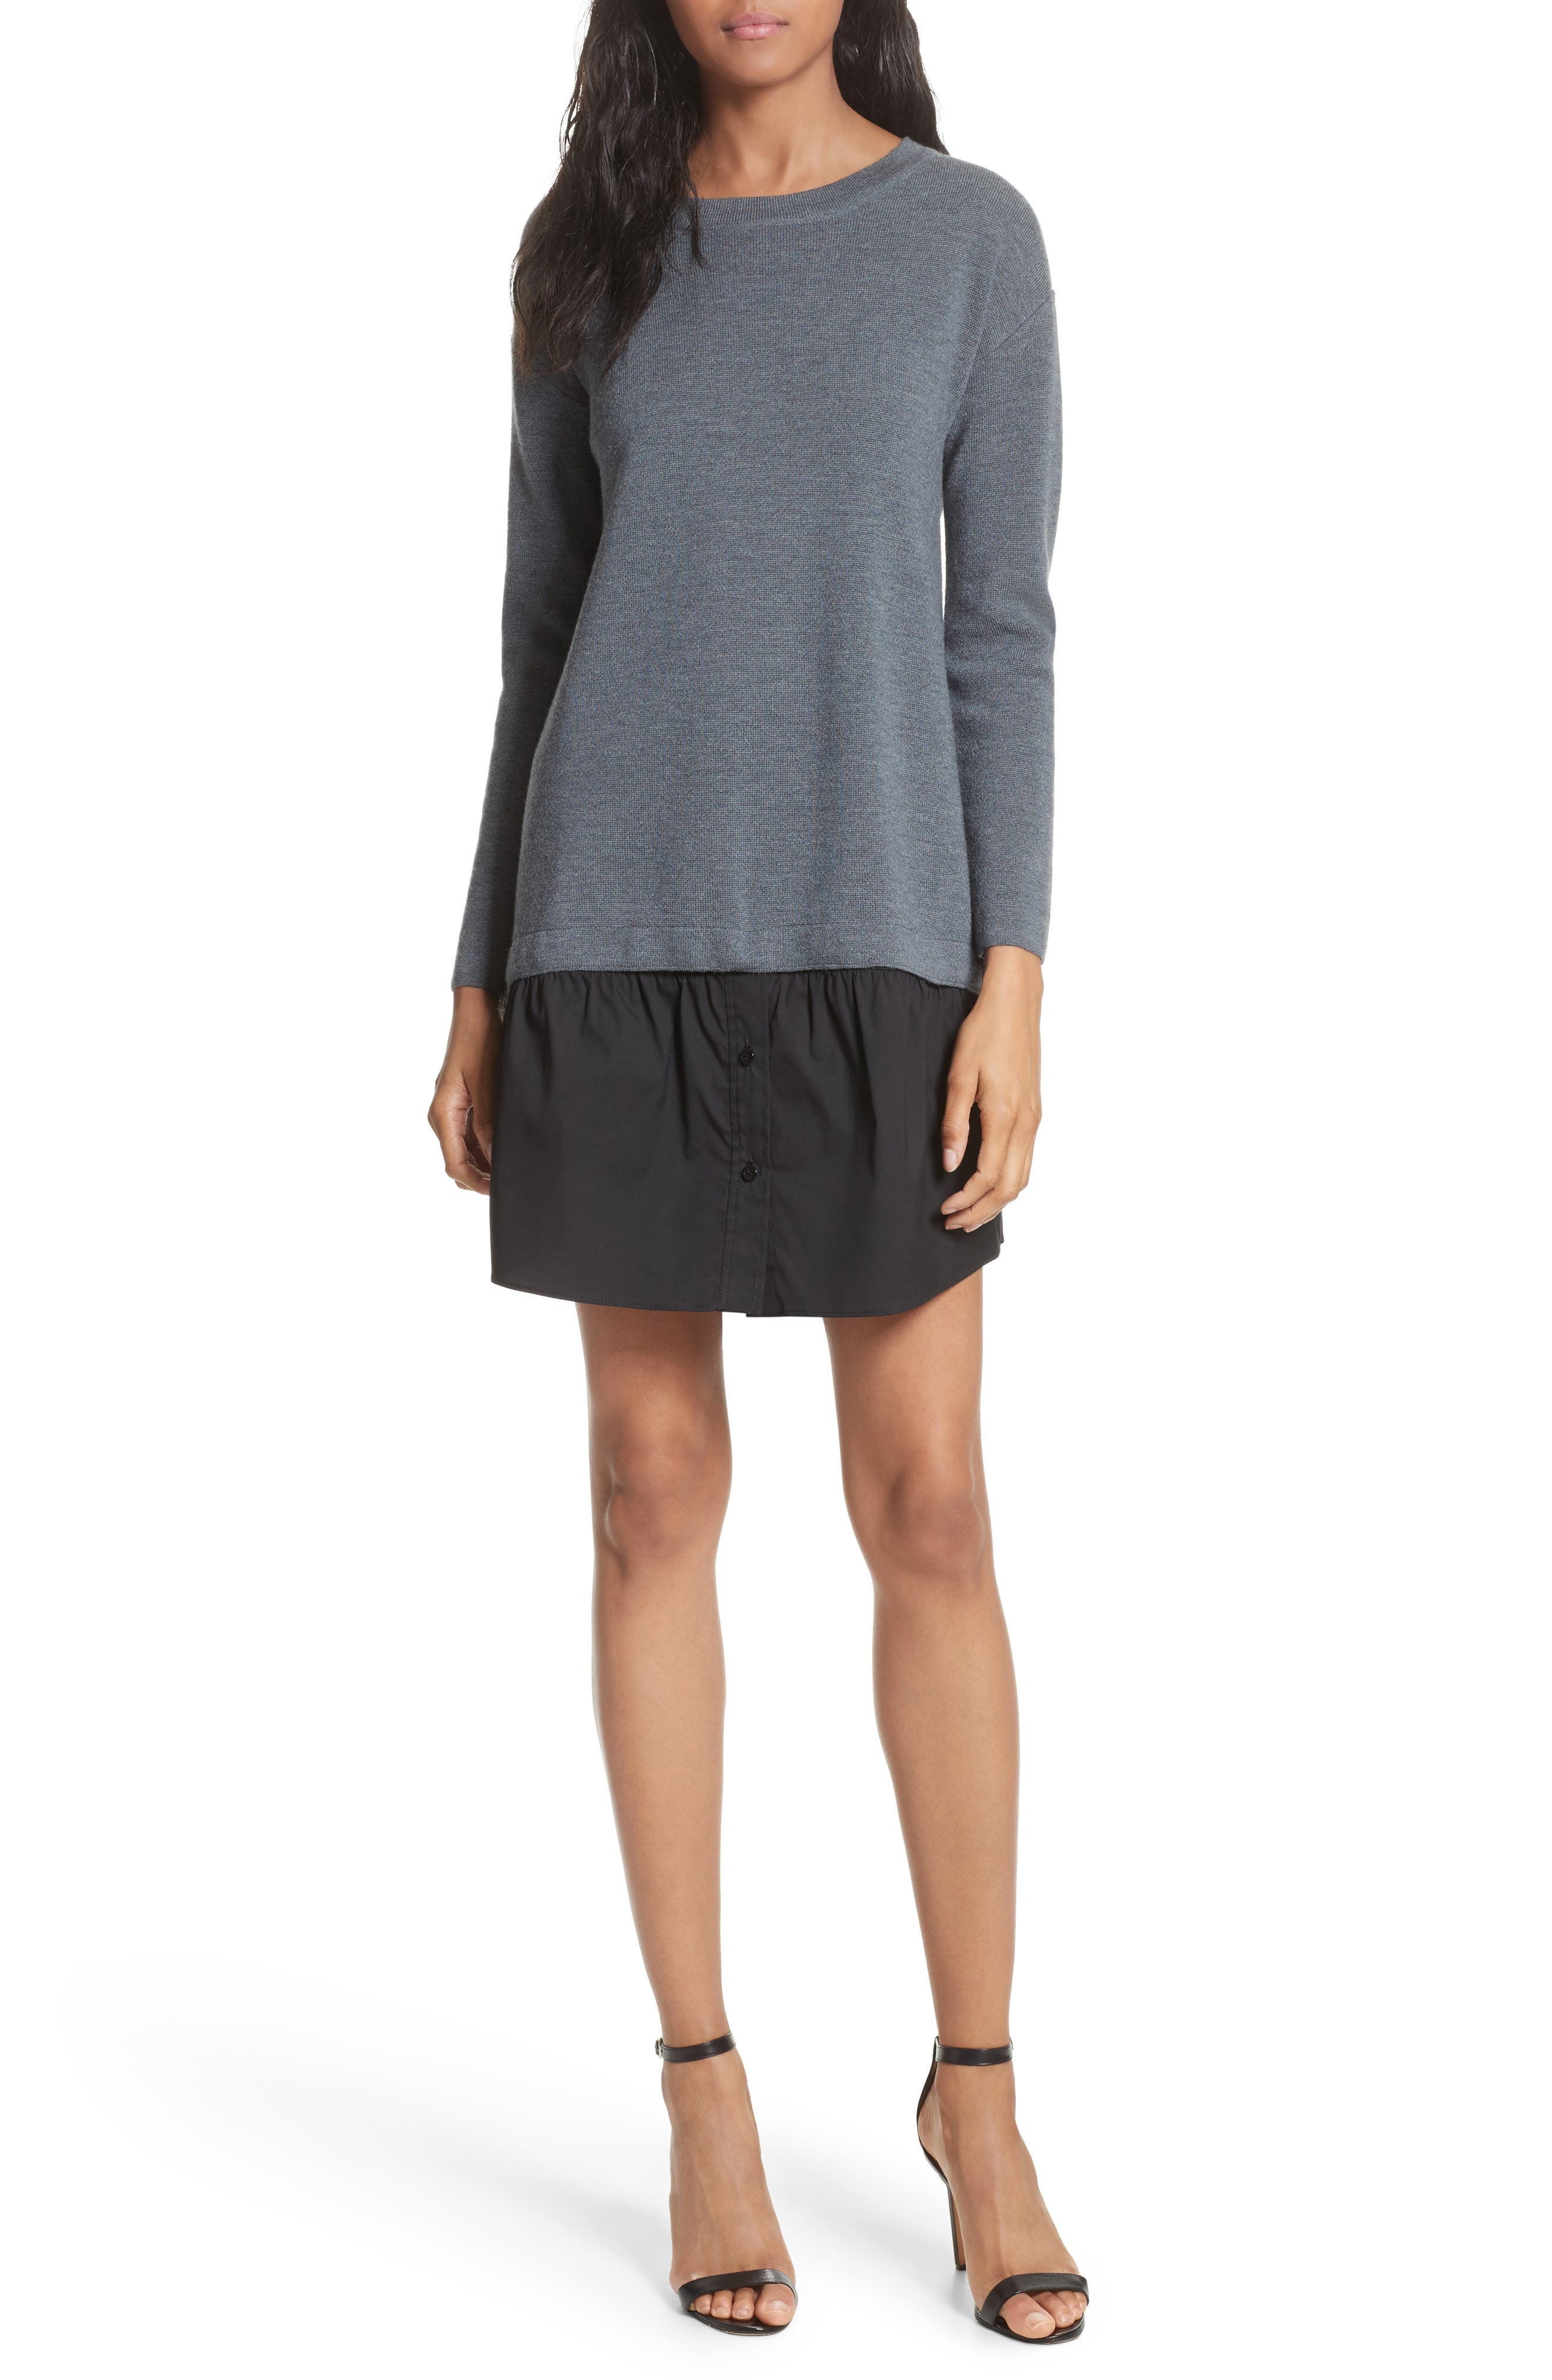 Alternate Image 1 Selected - Milly 2-in-1 Sweater Dress